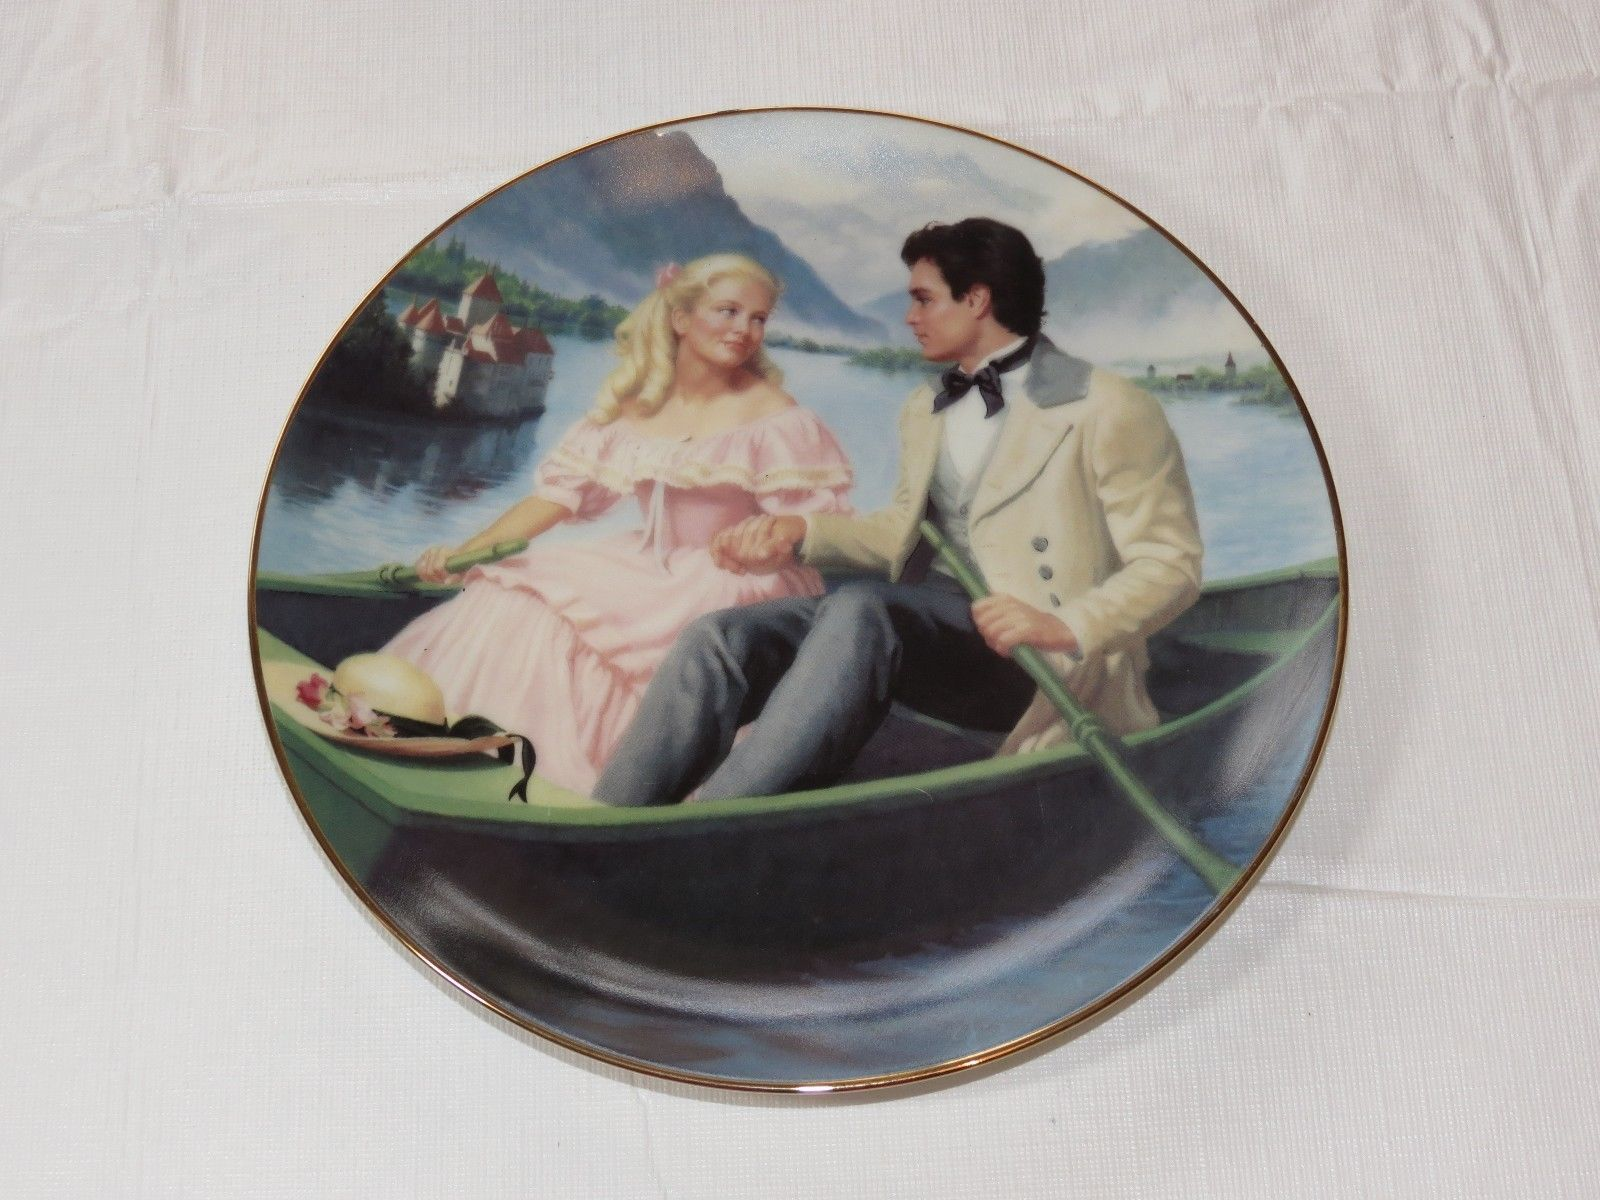 Laurie's Proposal Elaine Gignilliat Little Women Danbury Mint Collector Plate ~